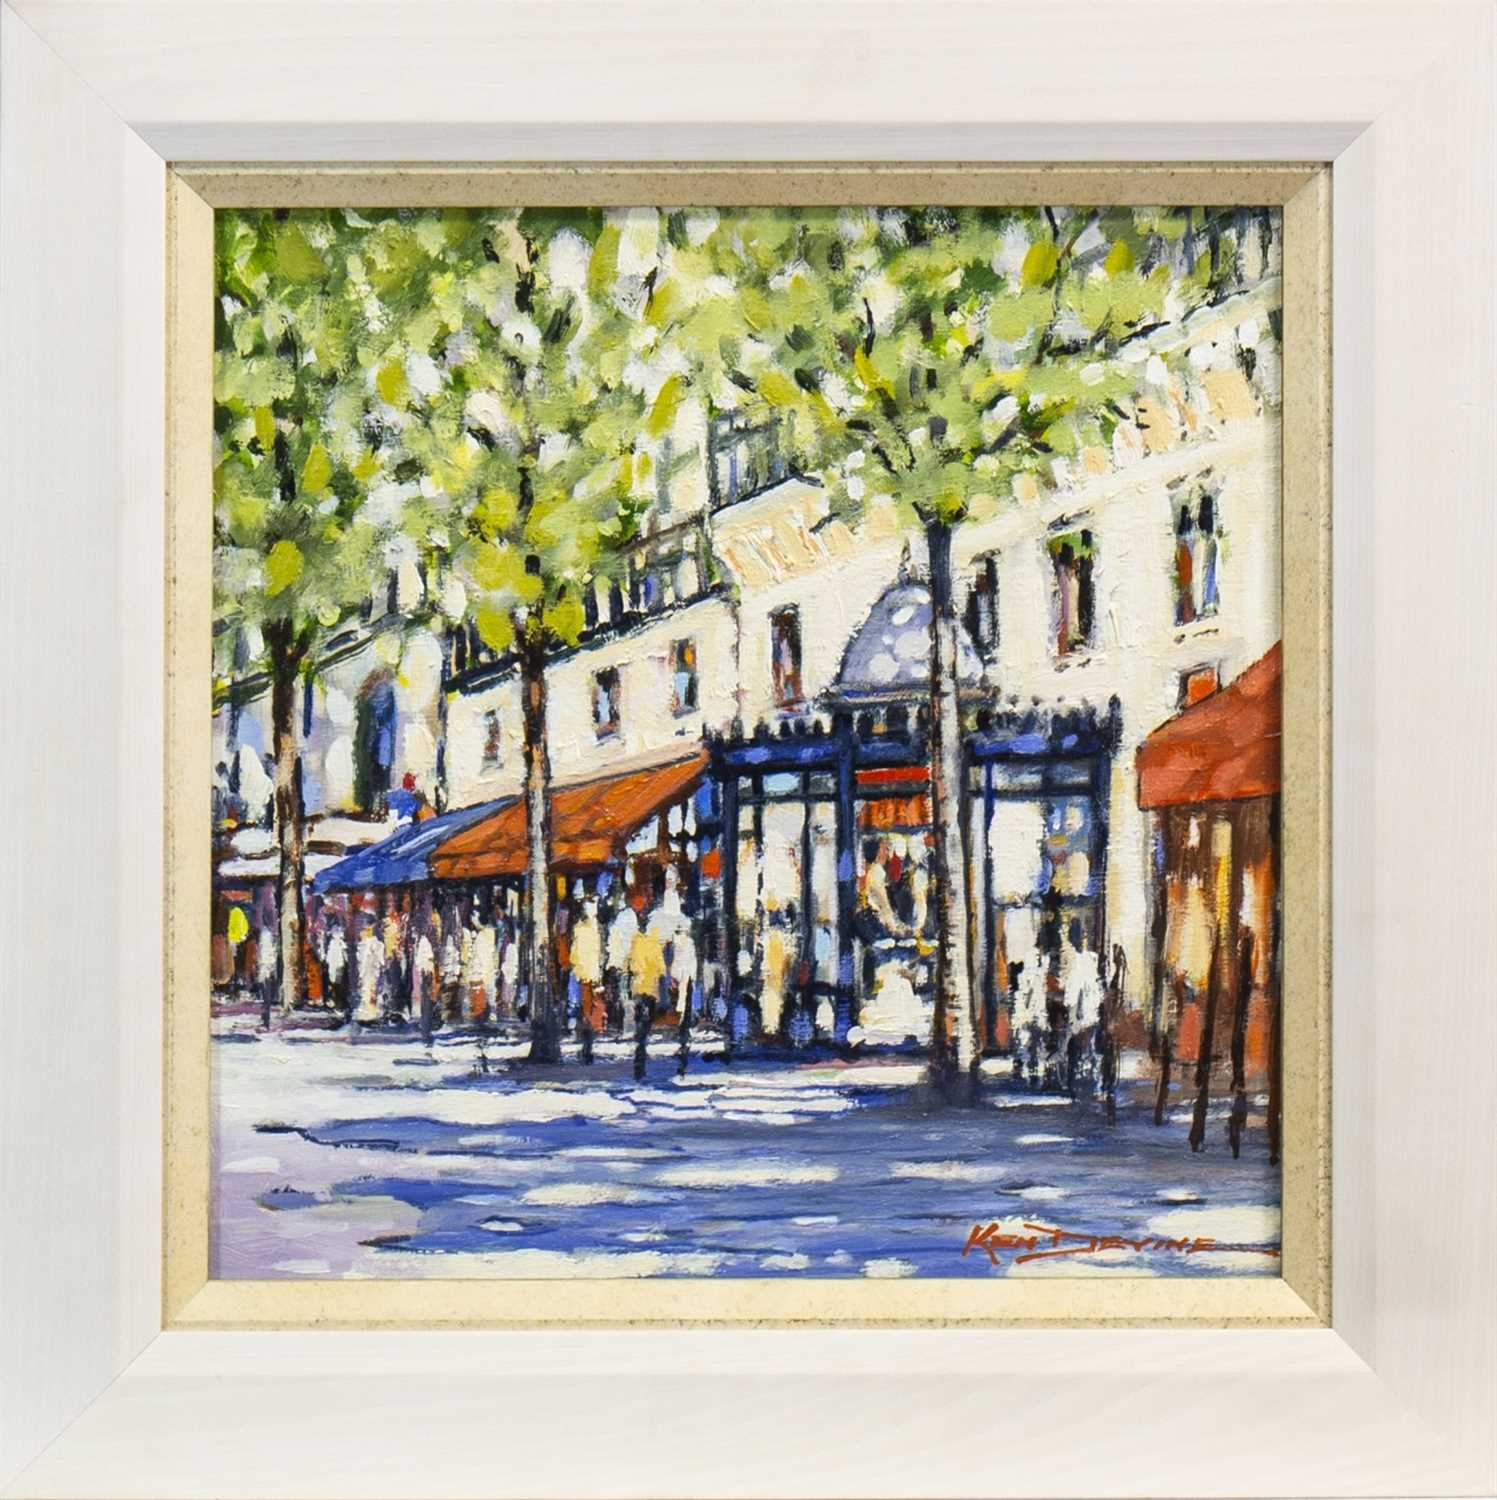 Lot 698-PARIS STREET SCENE, AN OIL BY KEN DEVINE